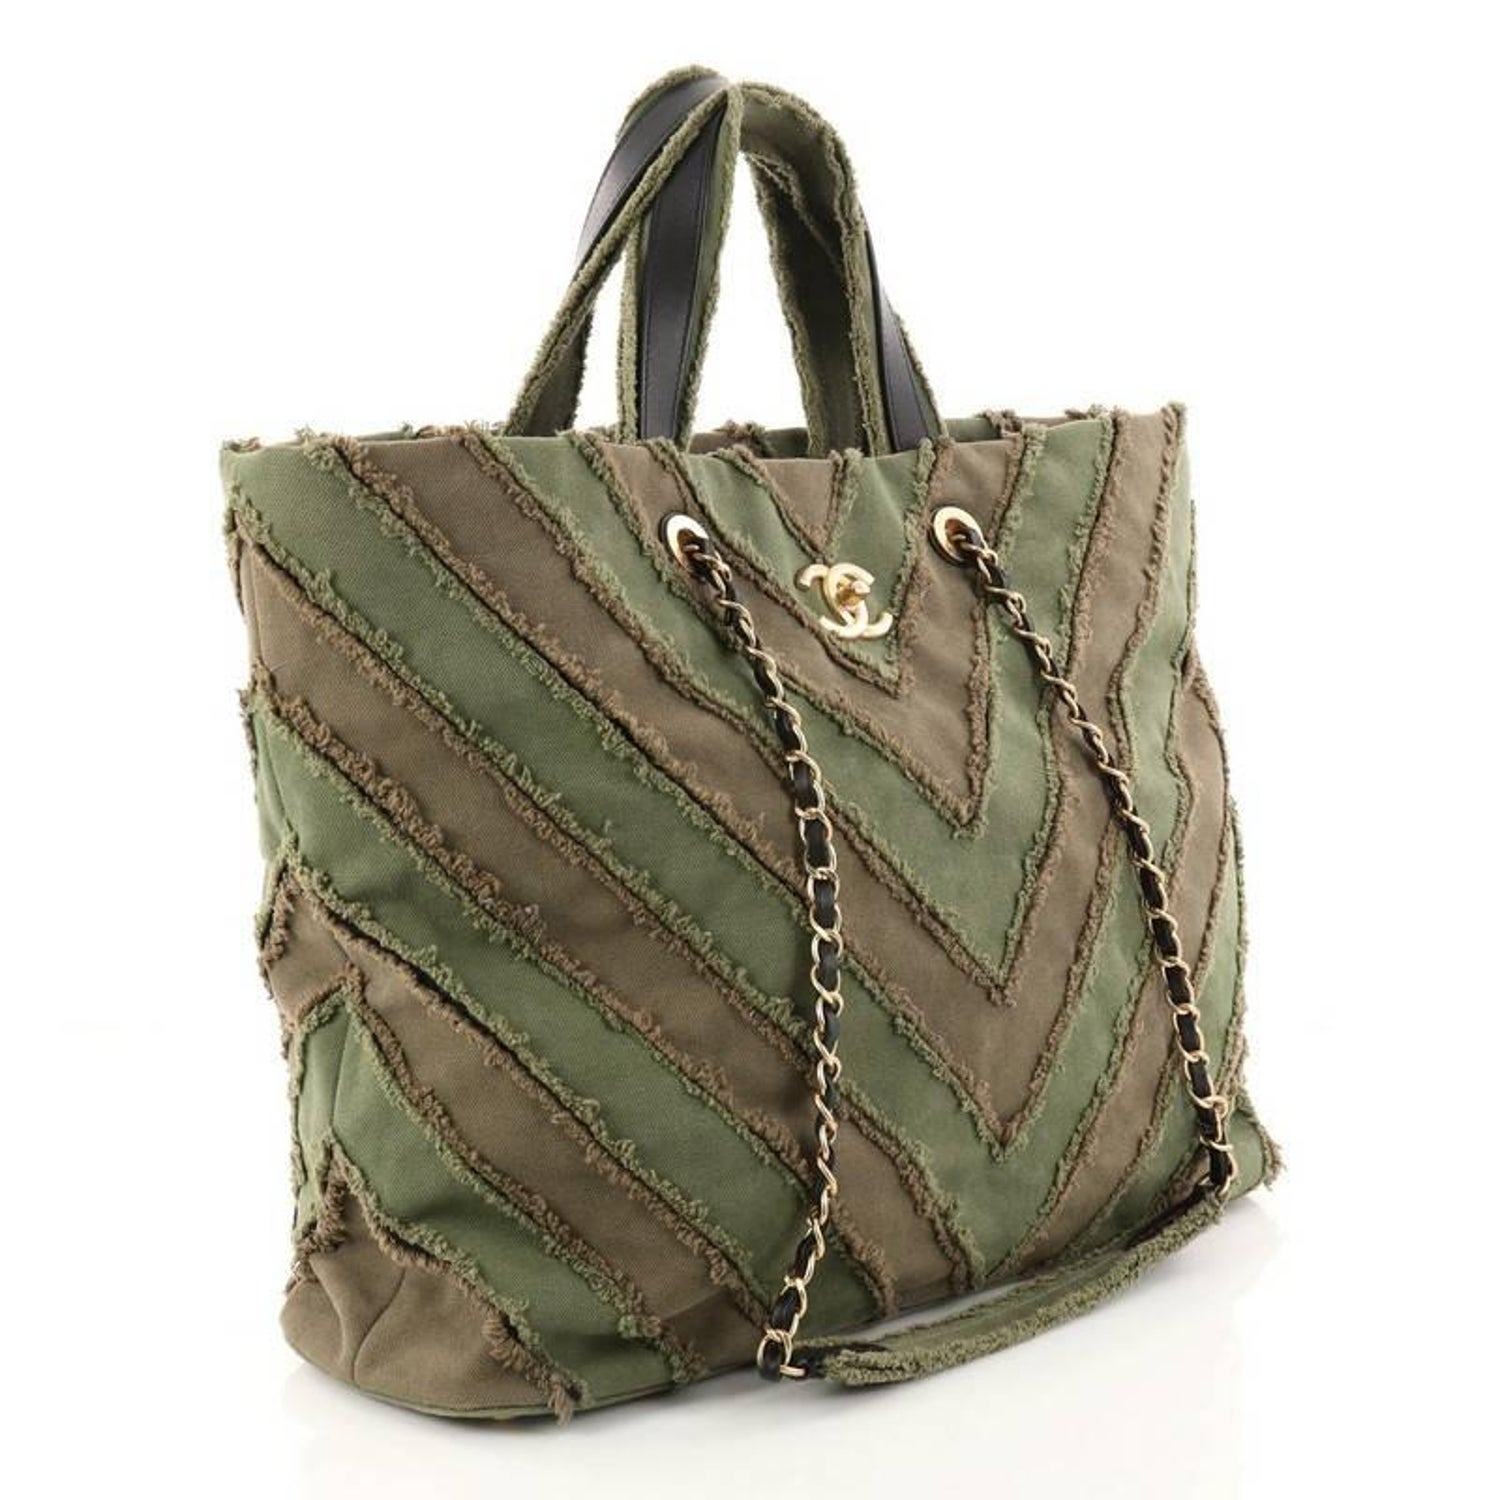 3b24f546ee7c04 Chanel Shopping Tote Chevron Canvas Patchwork Large at 1stdibs